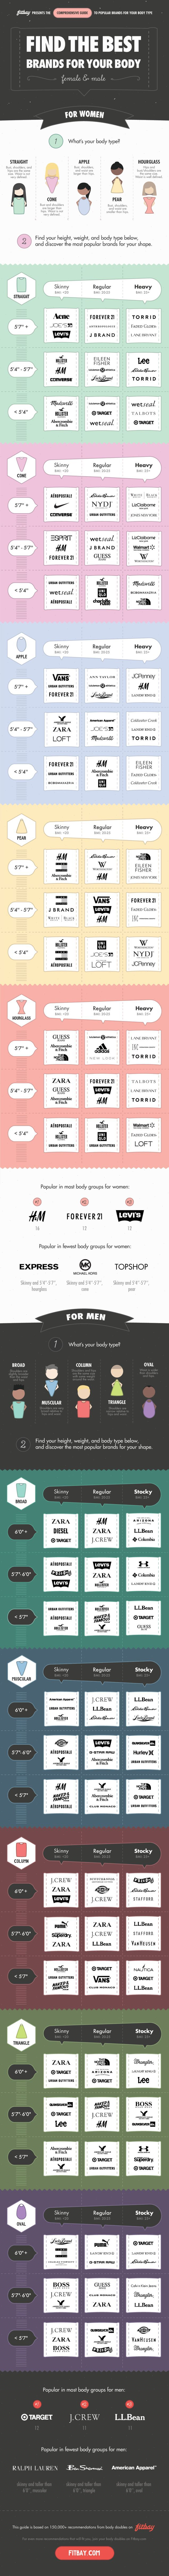 This Graphic Recommends the Best Clothing Brands for Your Body Type                                                                                                                                                                                 More